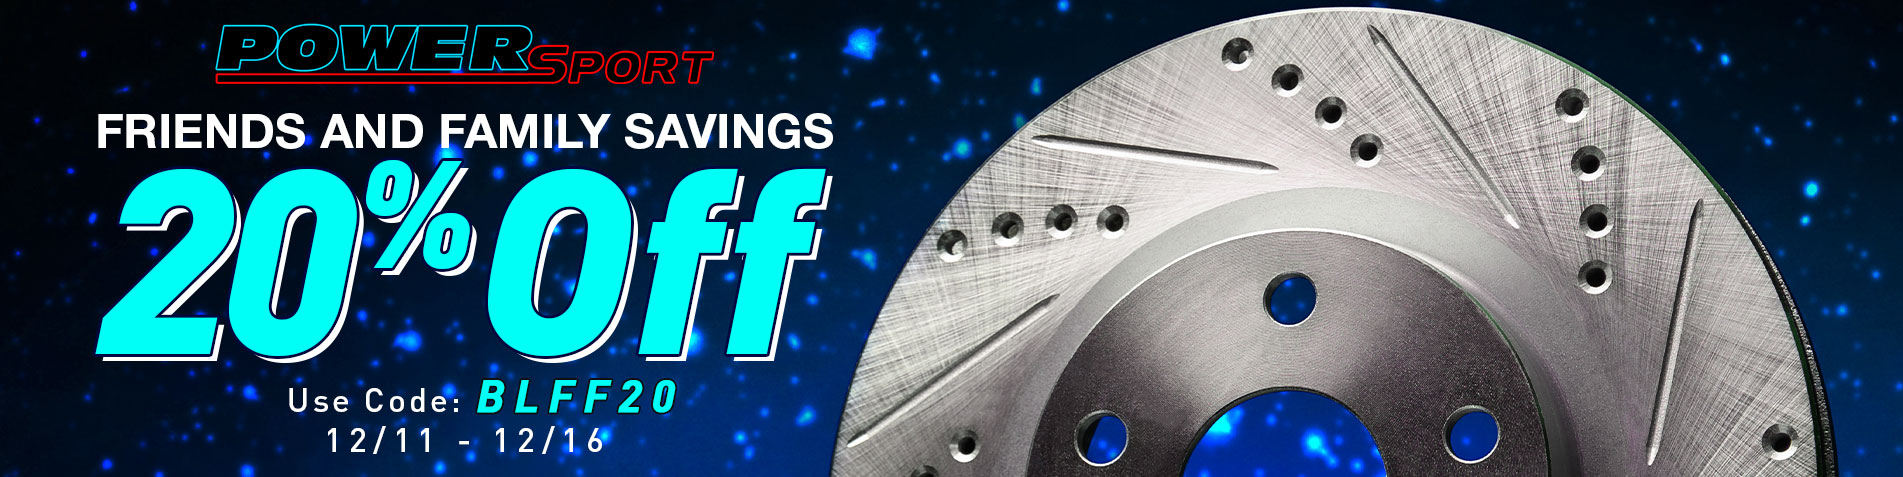 Replace Brake Rotors and Pads made simple. Get a complete brake package and sefty.